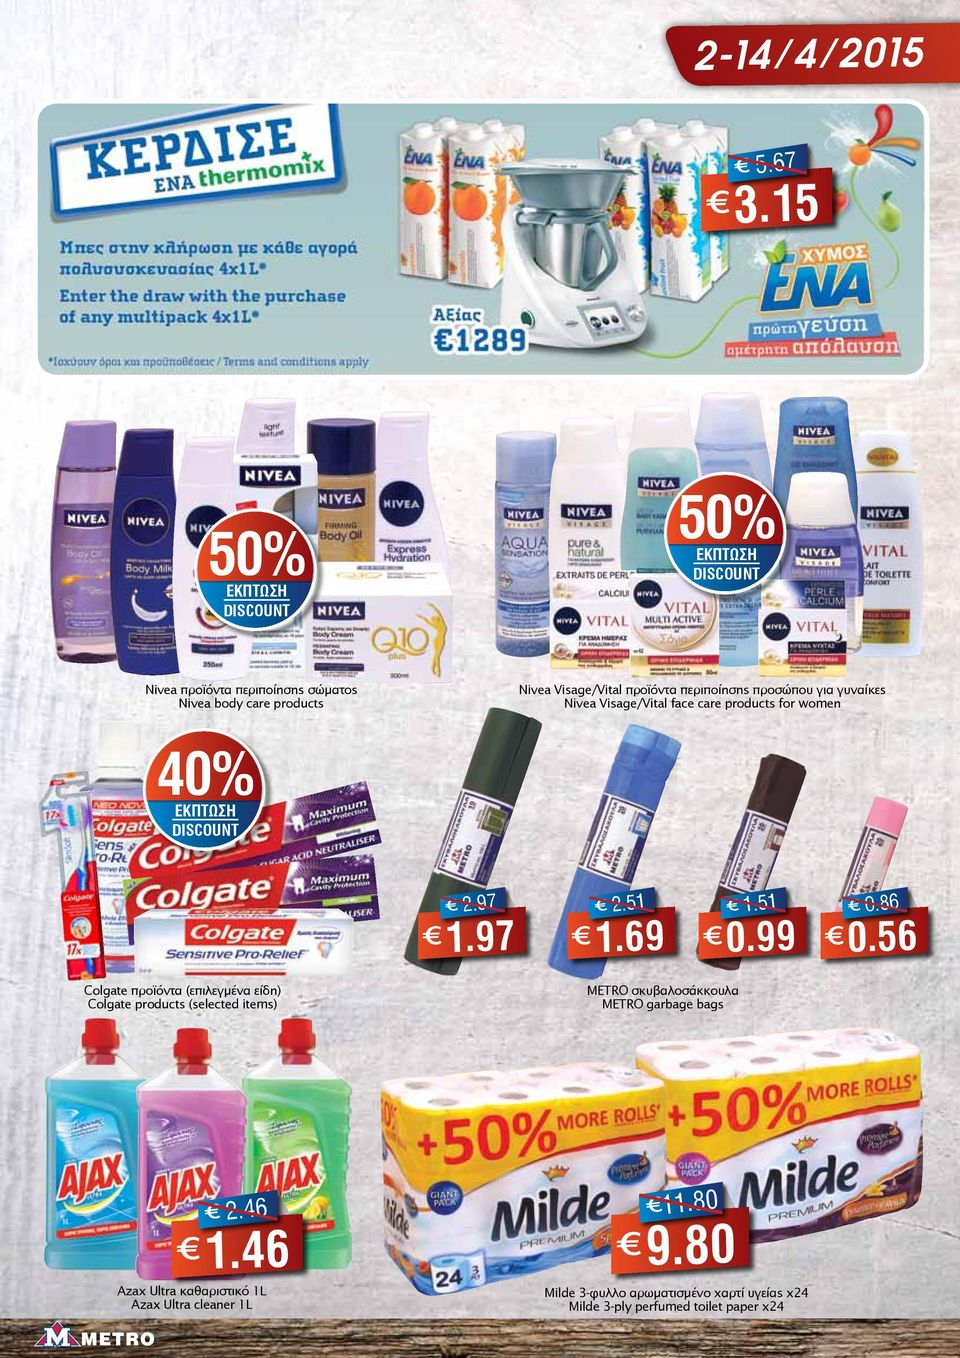 γυναίκες Nivea Visage/Vital face care products for women 40% 2.97 1.97 2.51 1.69 1.51 0.99 0.86 0.